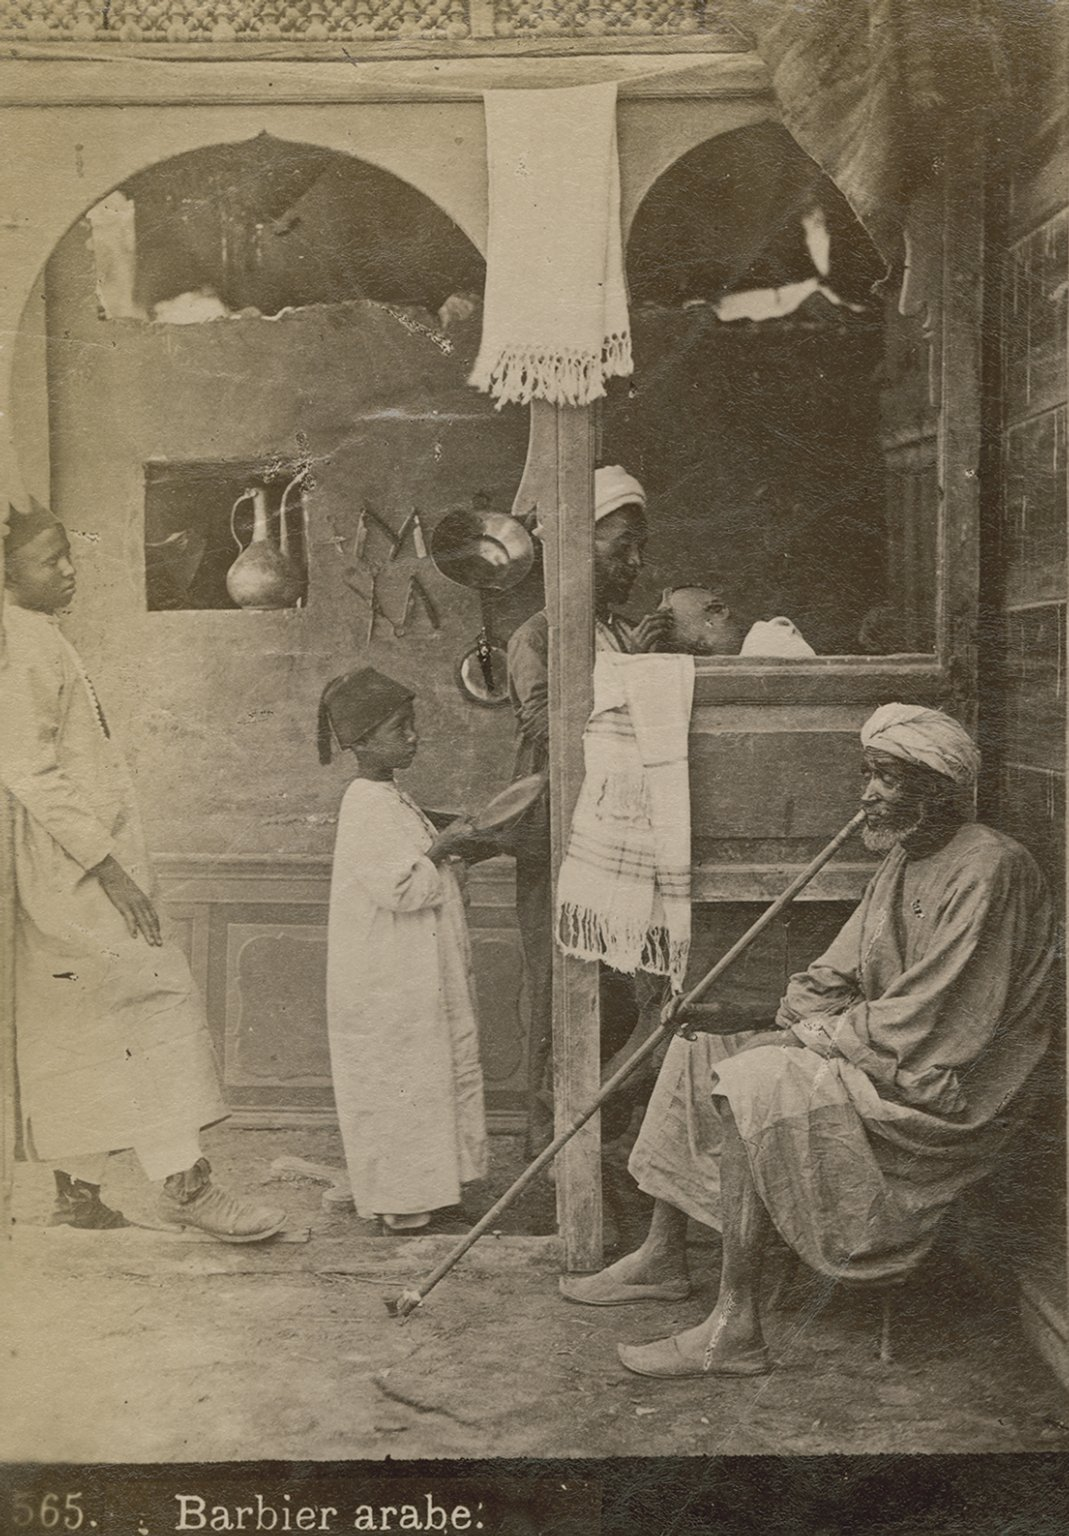 Street barber and man with pipe.